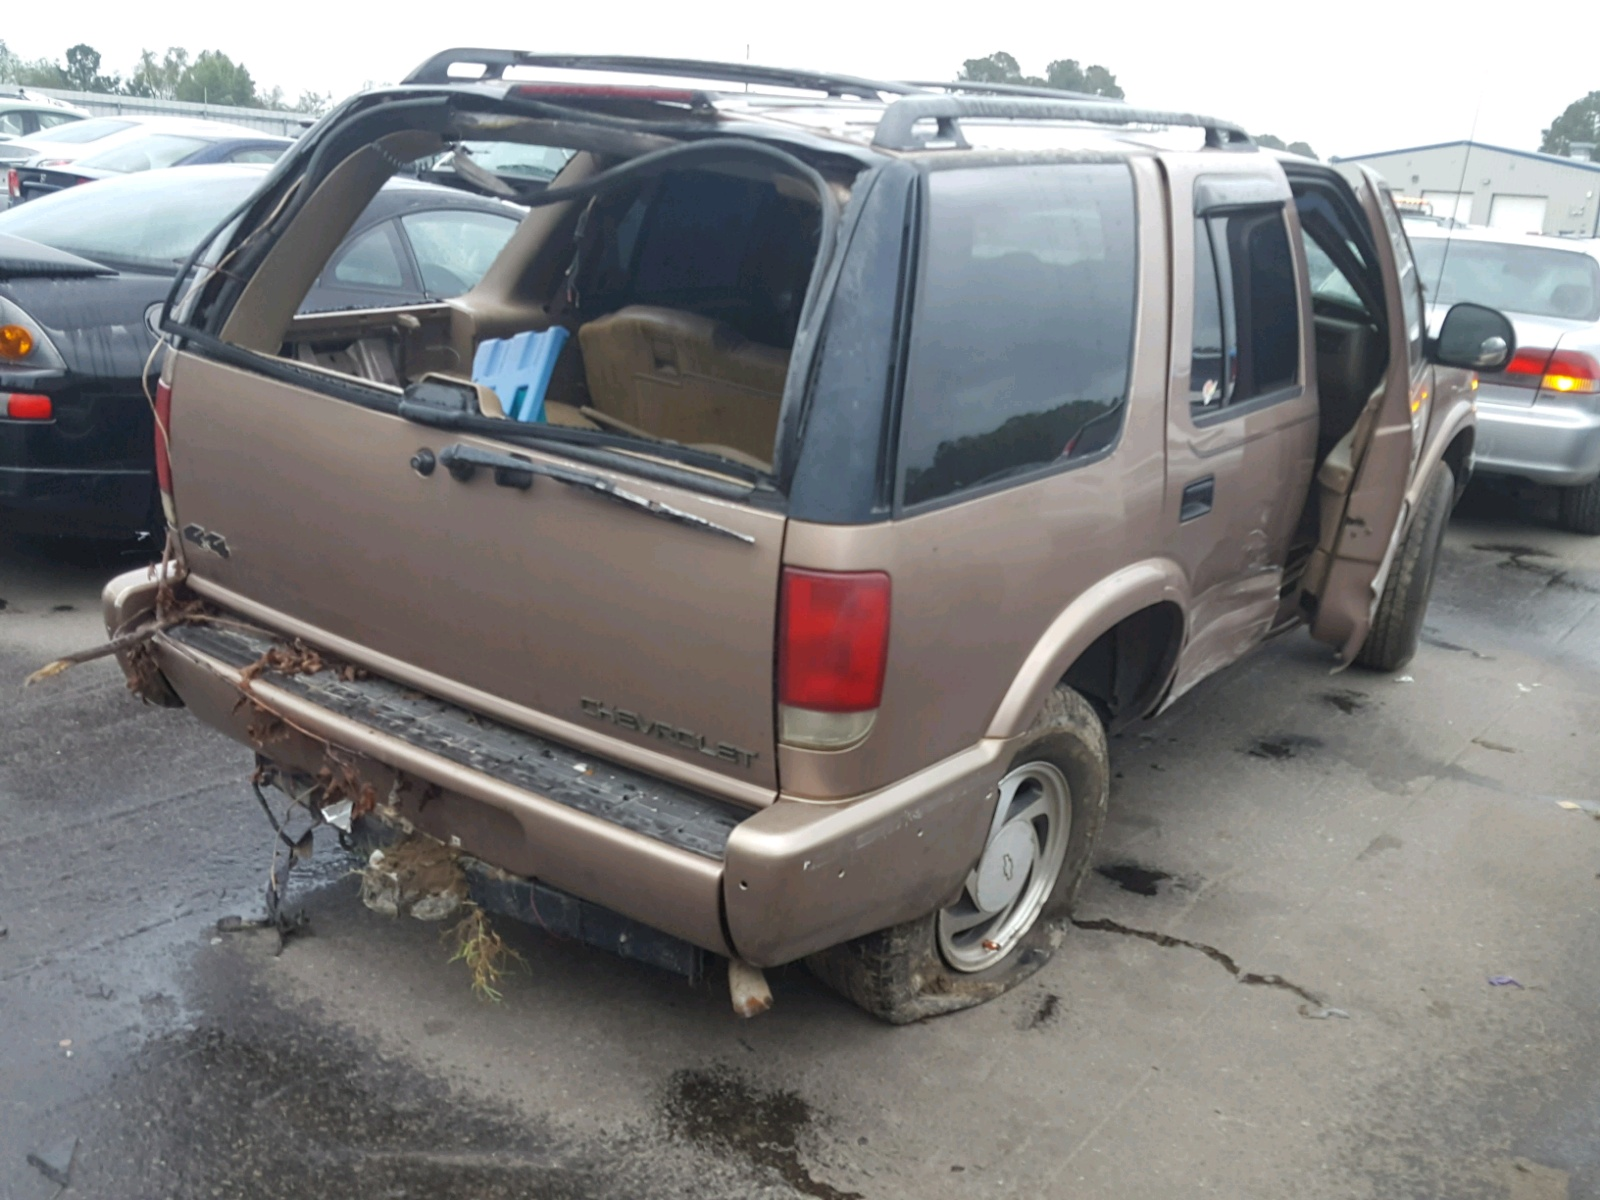 hight resolution of  1gndt13w3t2134077 1996 chevrolet blazer 4 3l rear view 1gndt13w3t2134077